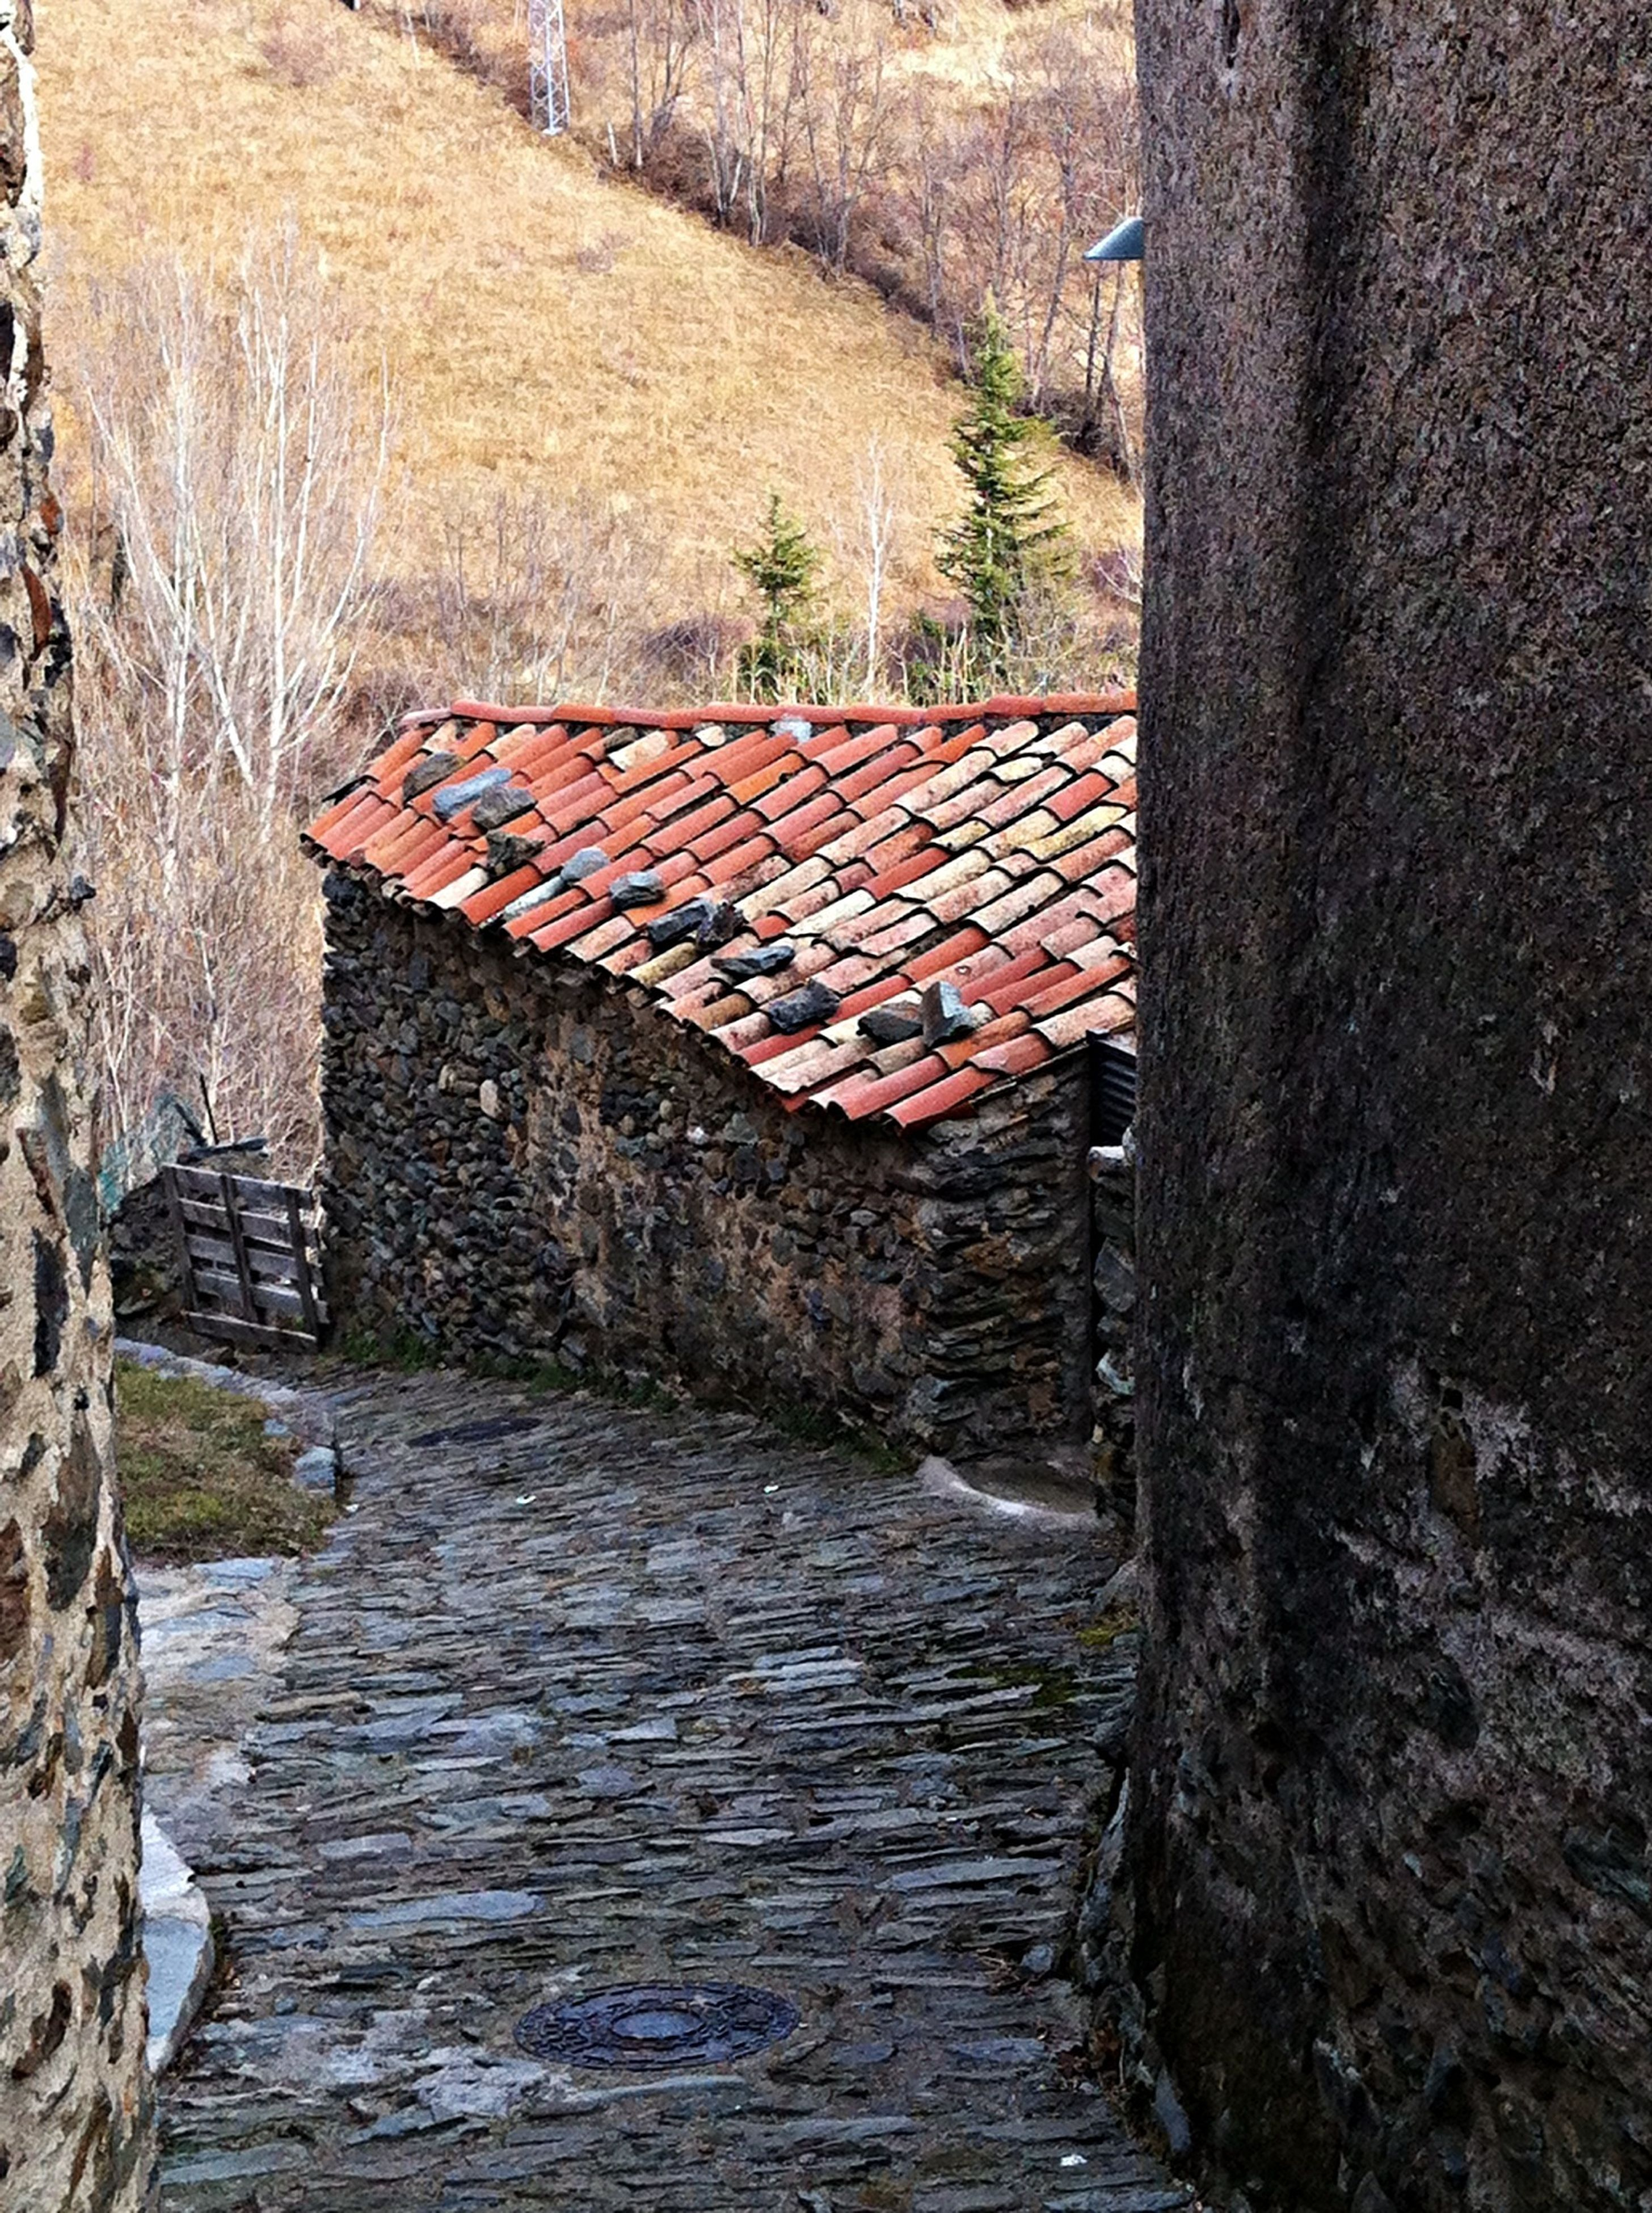 the way forward, architecture, built structure, building exterior, house, narrow, stone wall, walkway, wall - building feature, steps, footpath, day, pathway, brick wall, diminishing perspective, water, cobblestone, outdoors, old, no people